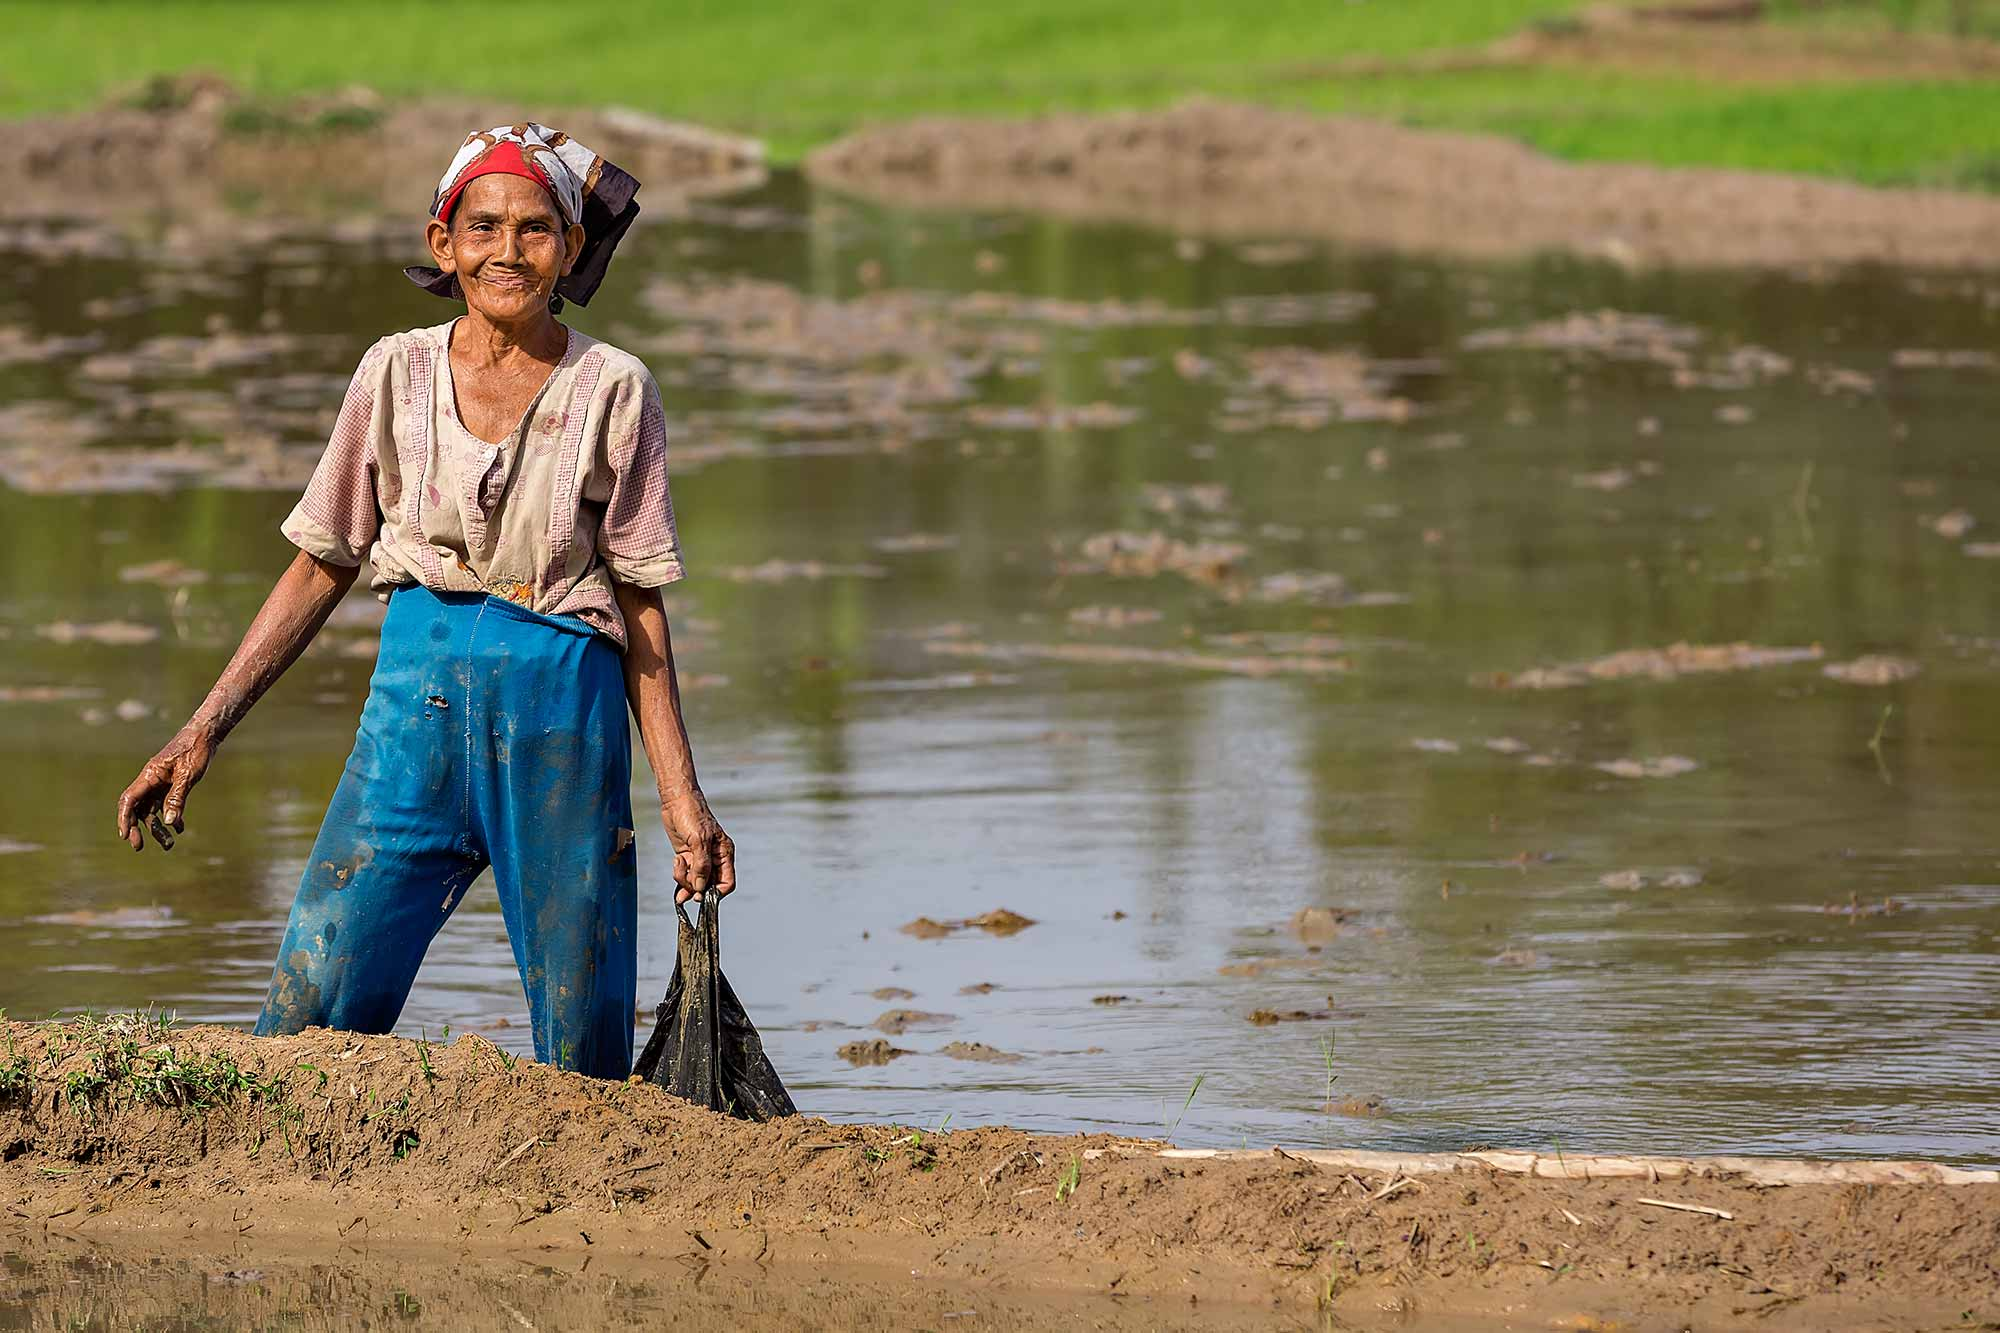 An older woman working in the rice fields in West Sumatra, Indonesia. © Ulli Maier & Nisa Maier